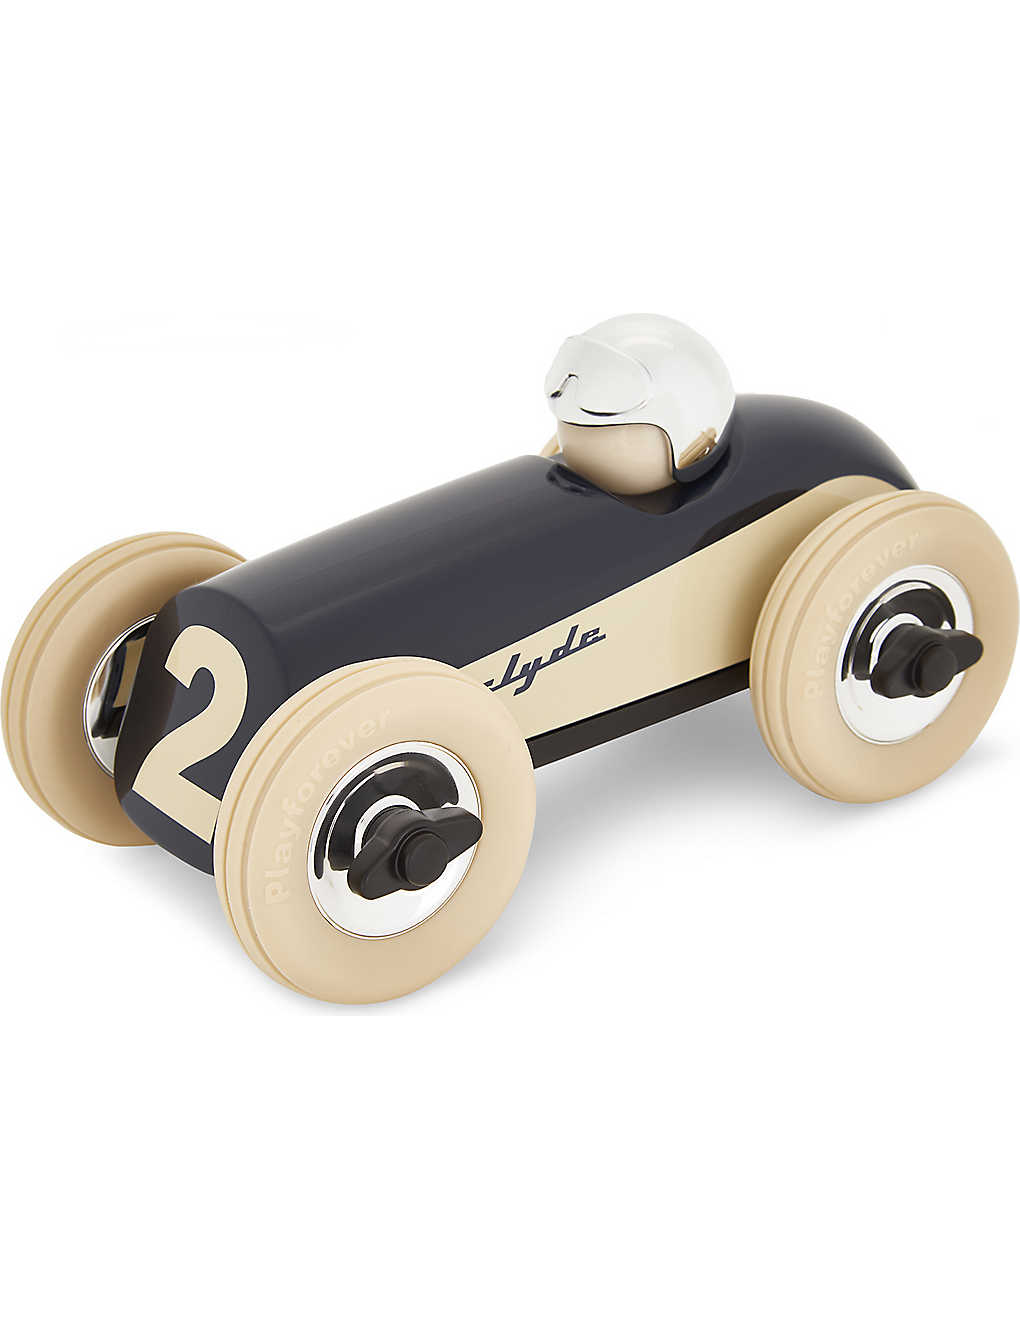 PLAYFOREVER: Midi Clyde toy car